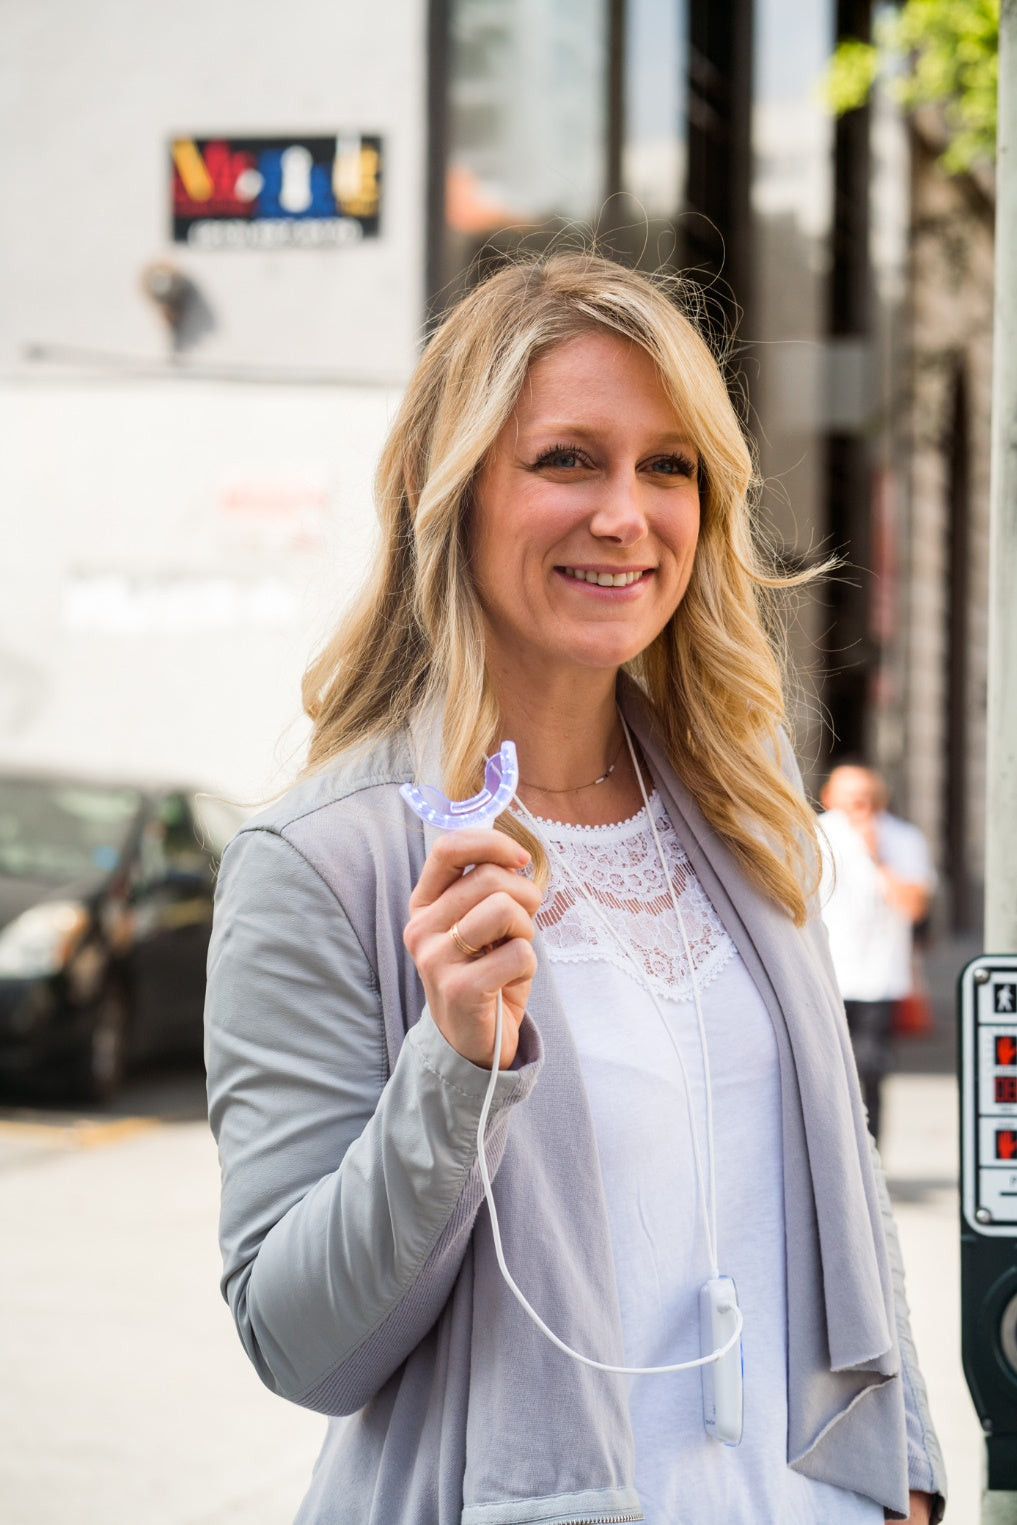 Smiling woman standing at an intersection holding the GLO Science at-home teeth whitening system.